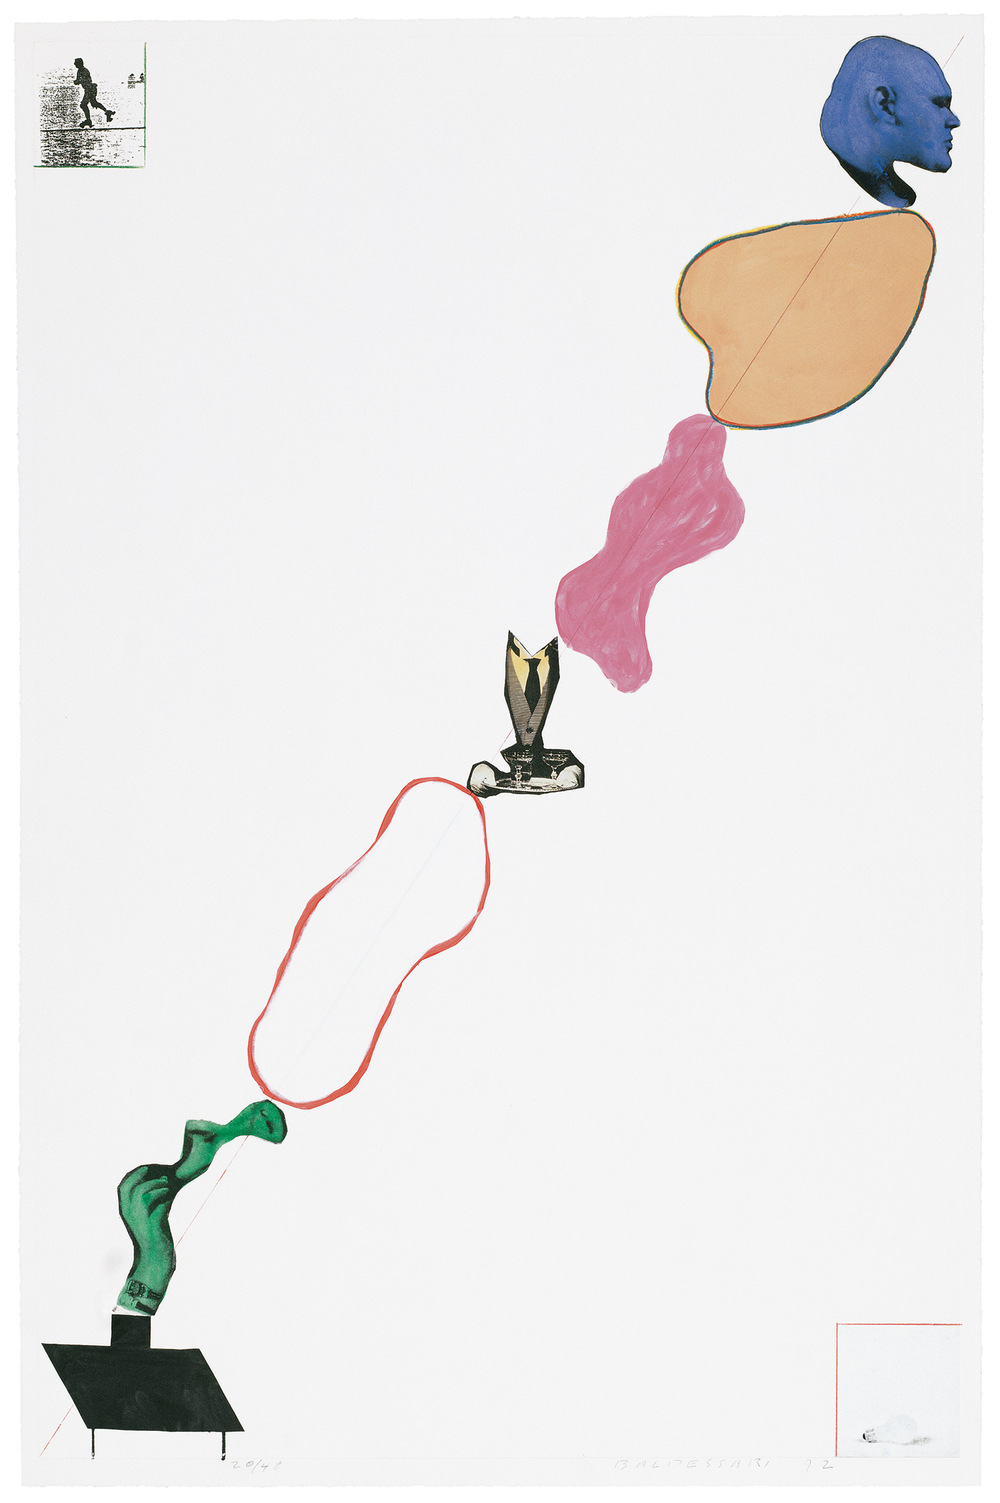 Domestic Smoke: Desire, Power, Colored Intervals, and Genie (with Two Boxed Asides) , 1992 Publisher: Olive Press Cornell University, Edition of 48.  © John Baldessari